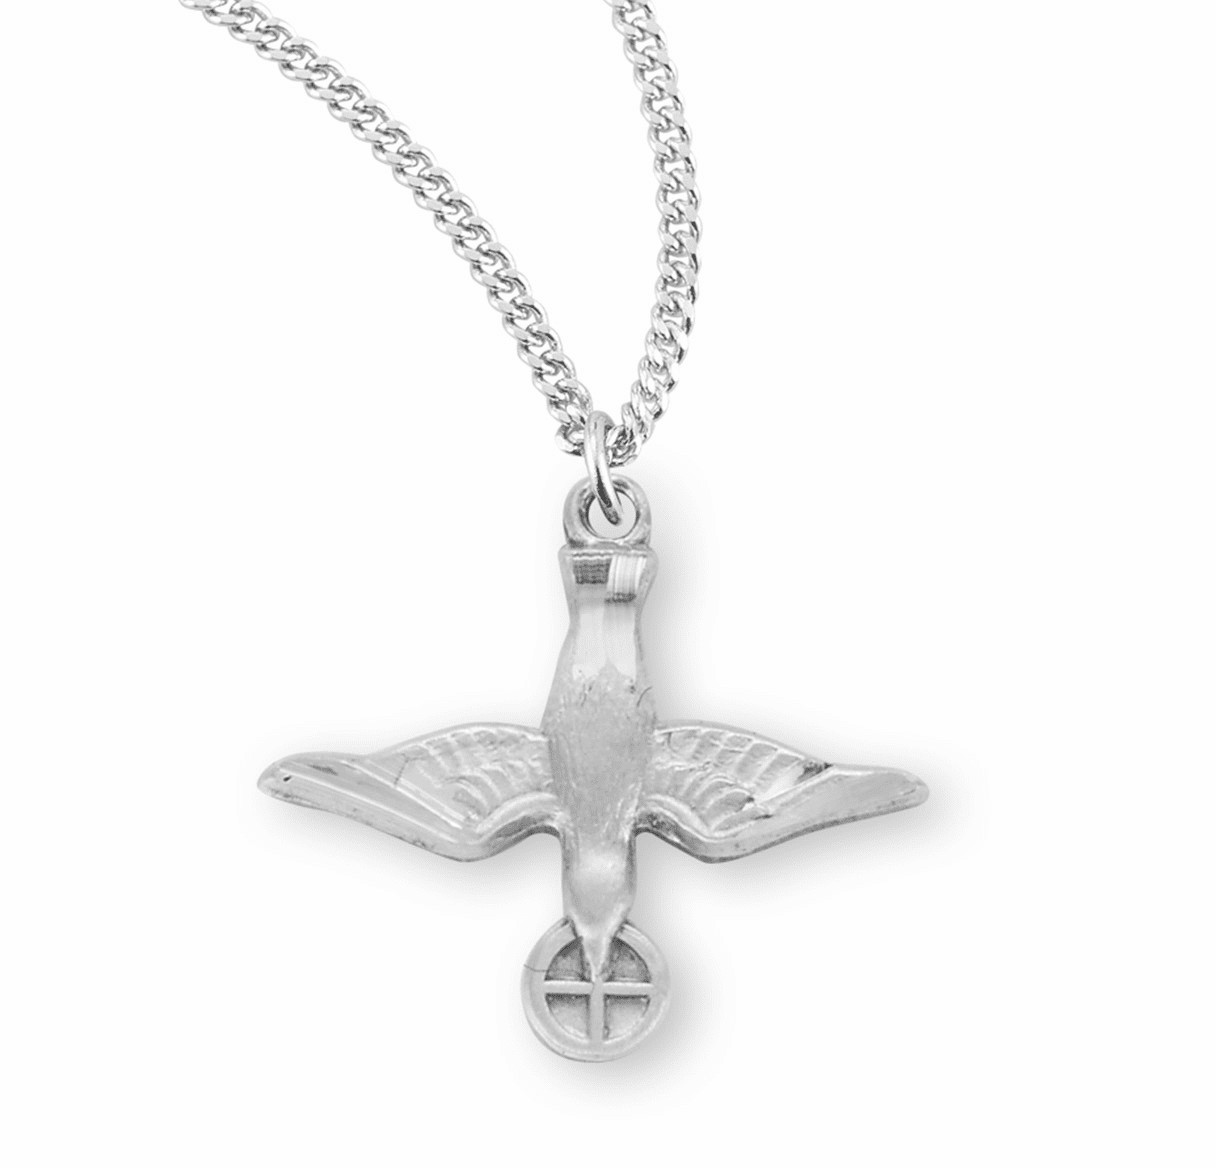 HMH Religious Small Holy Spirit Dove Medal w/Cross Necklace